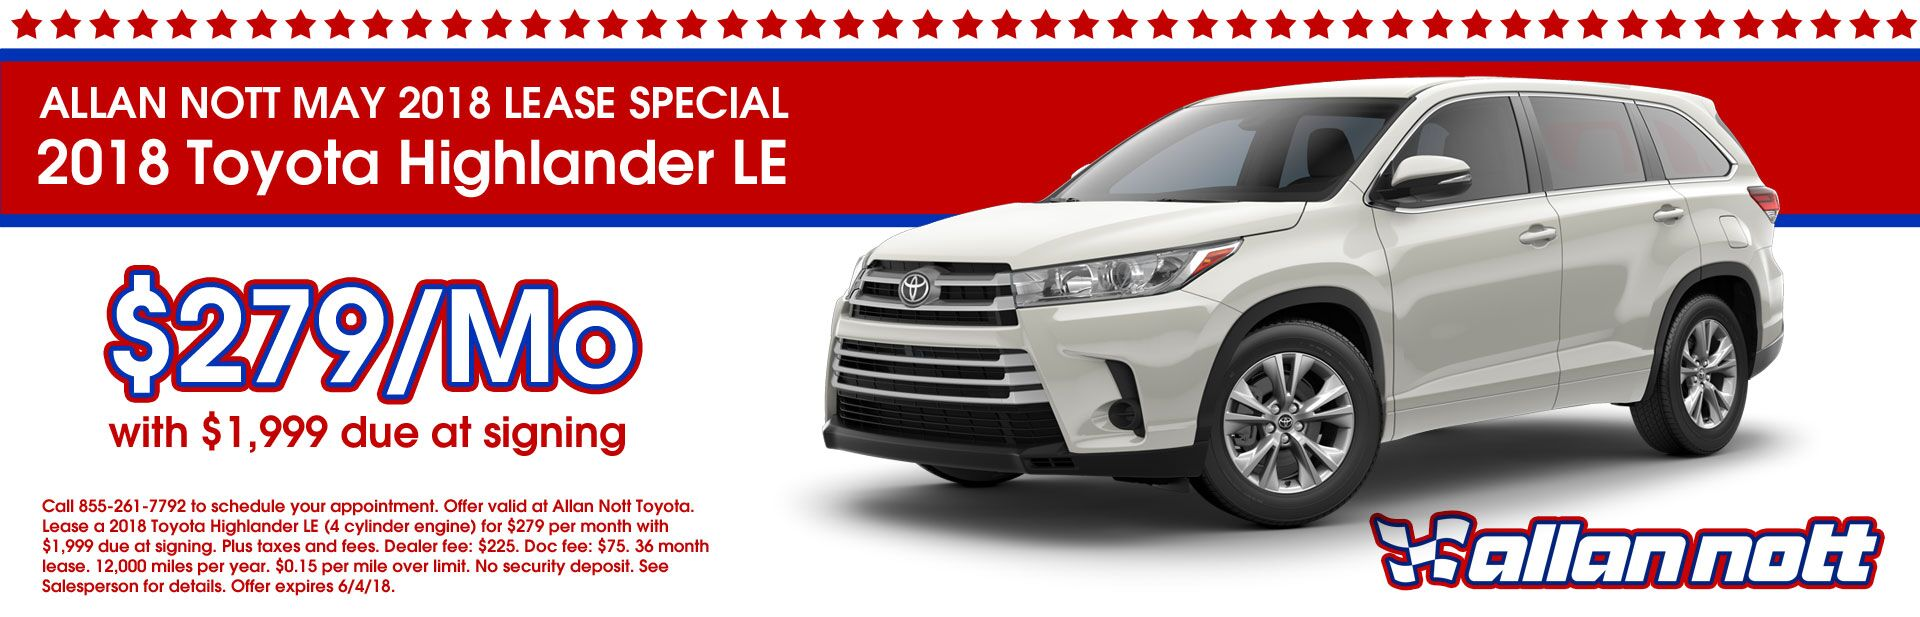 May 2018 Toyota Highlander LE Lease Special